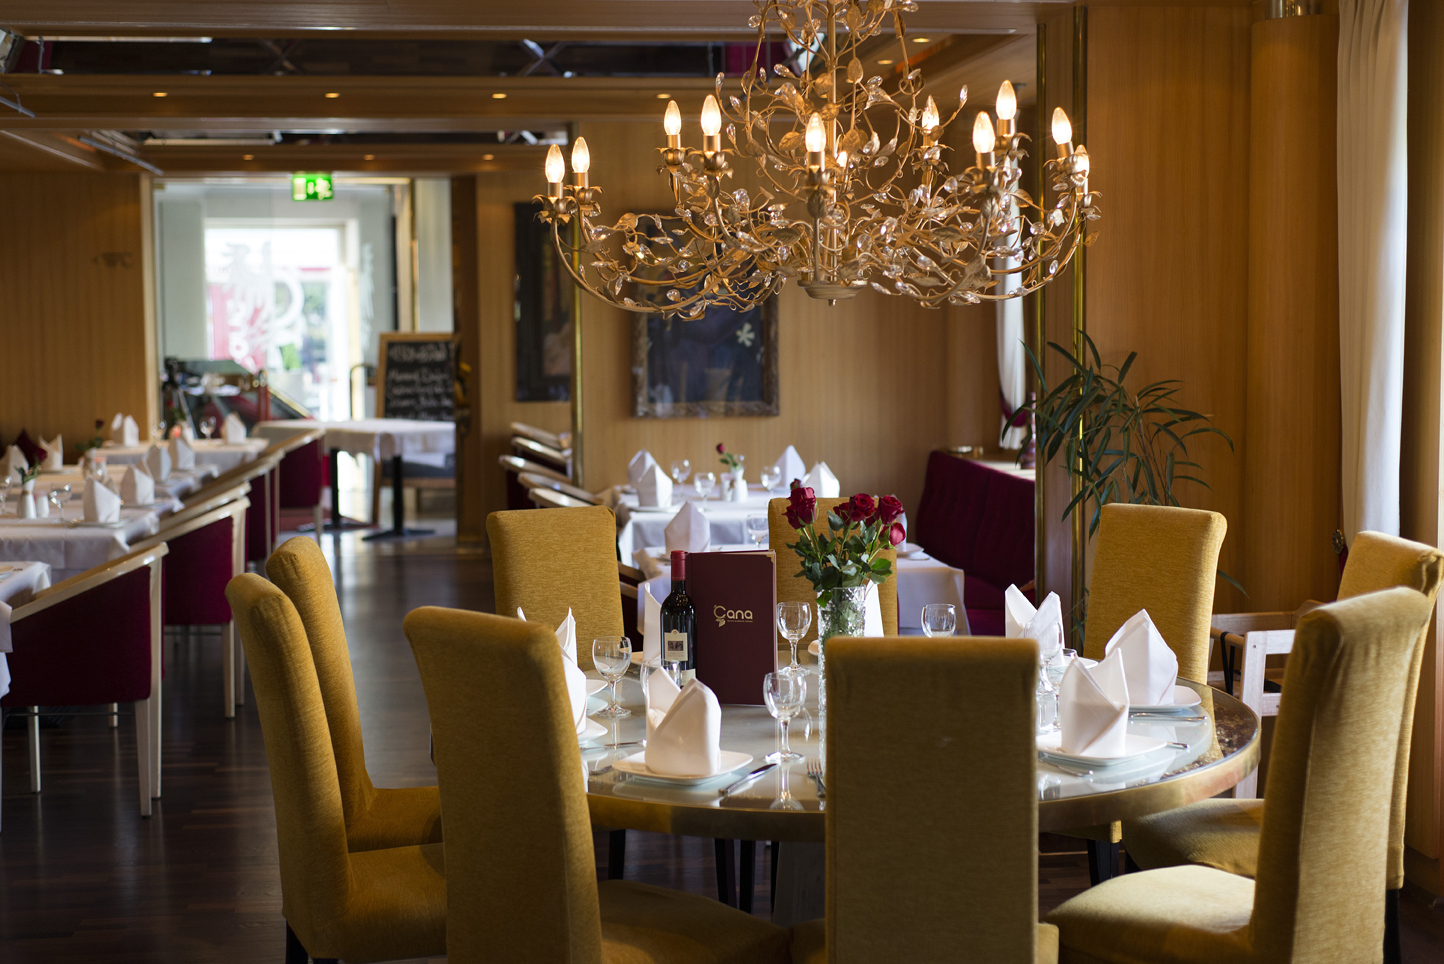 Cana Restaurant & Catering | Ambiente